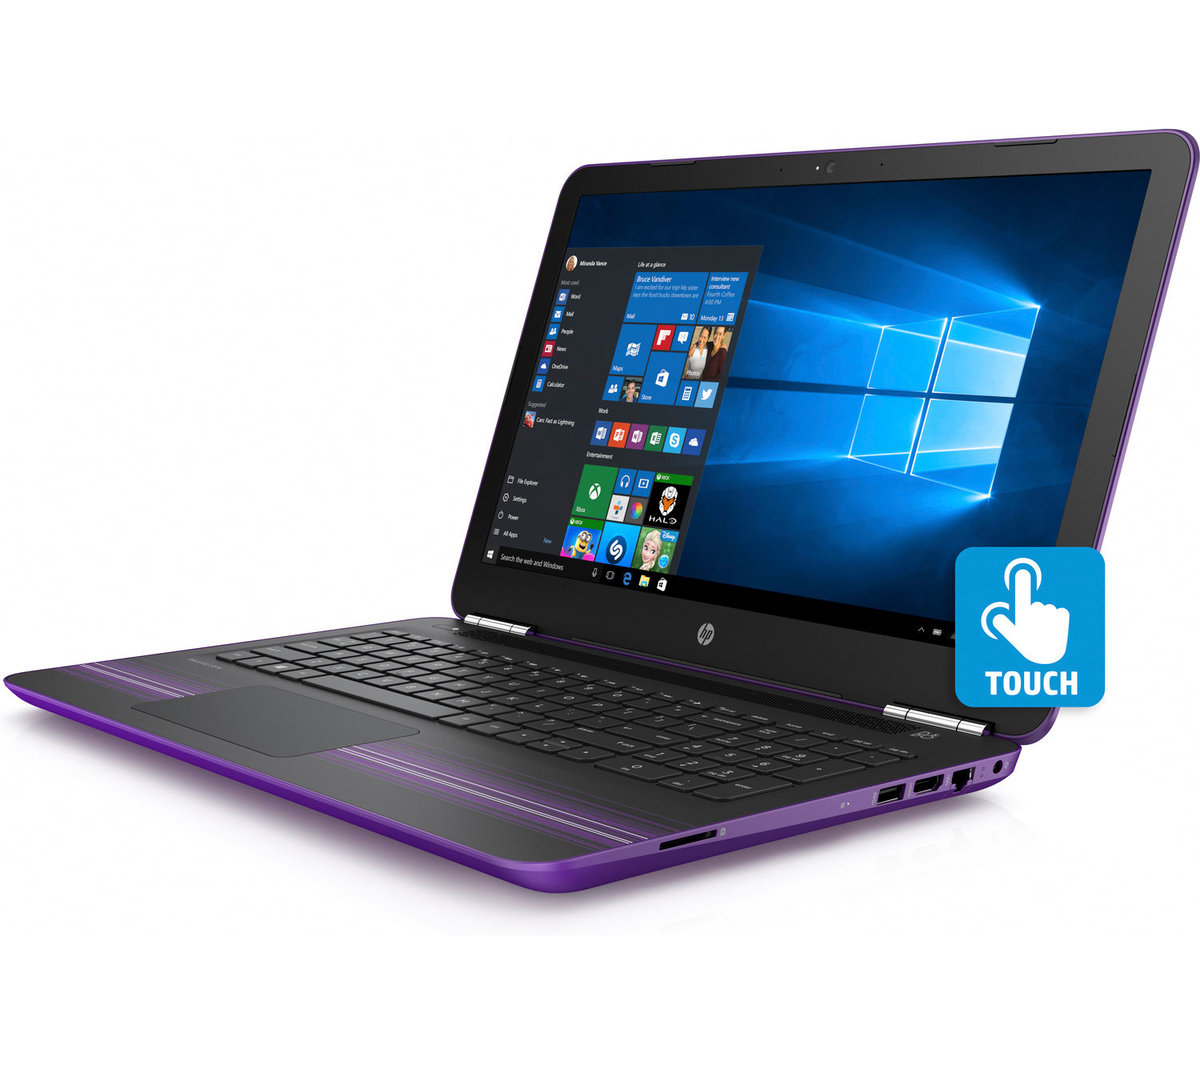 HP 15-aw068nr Pavilion Laptop, 15 6